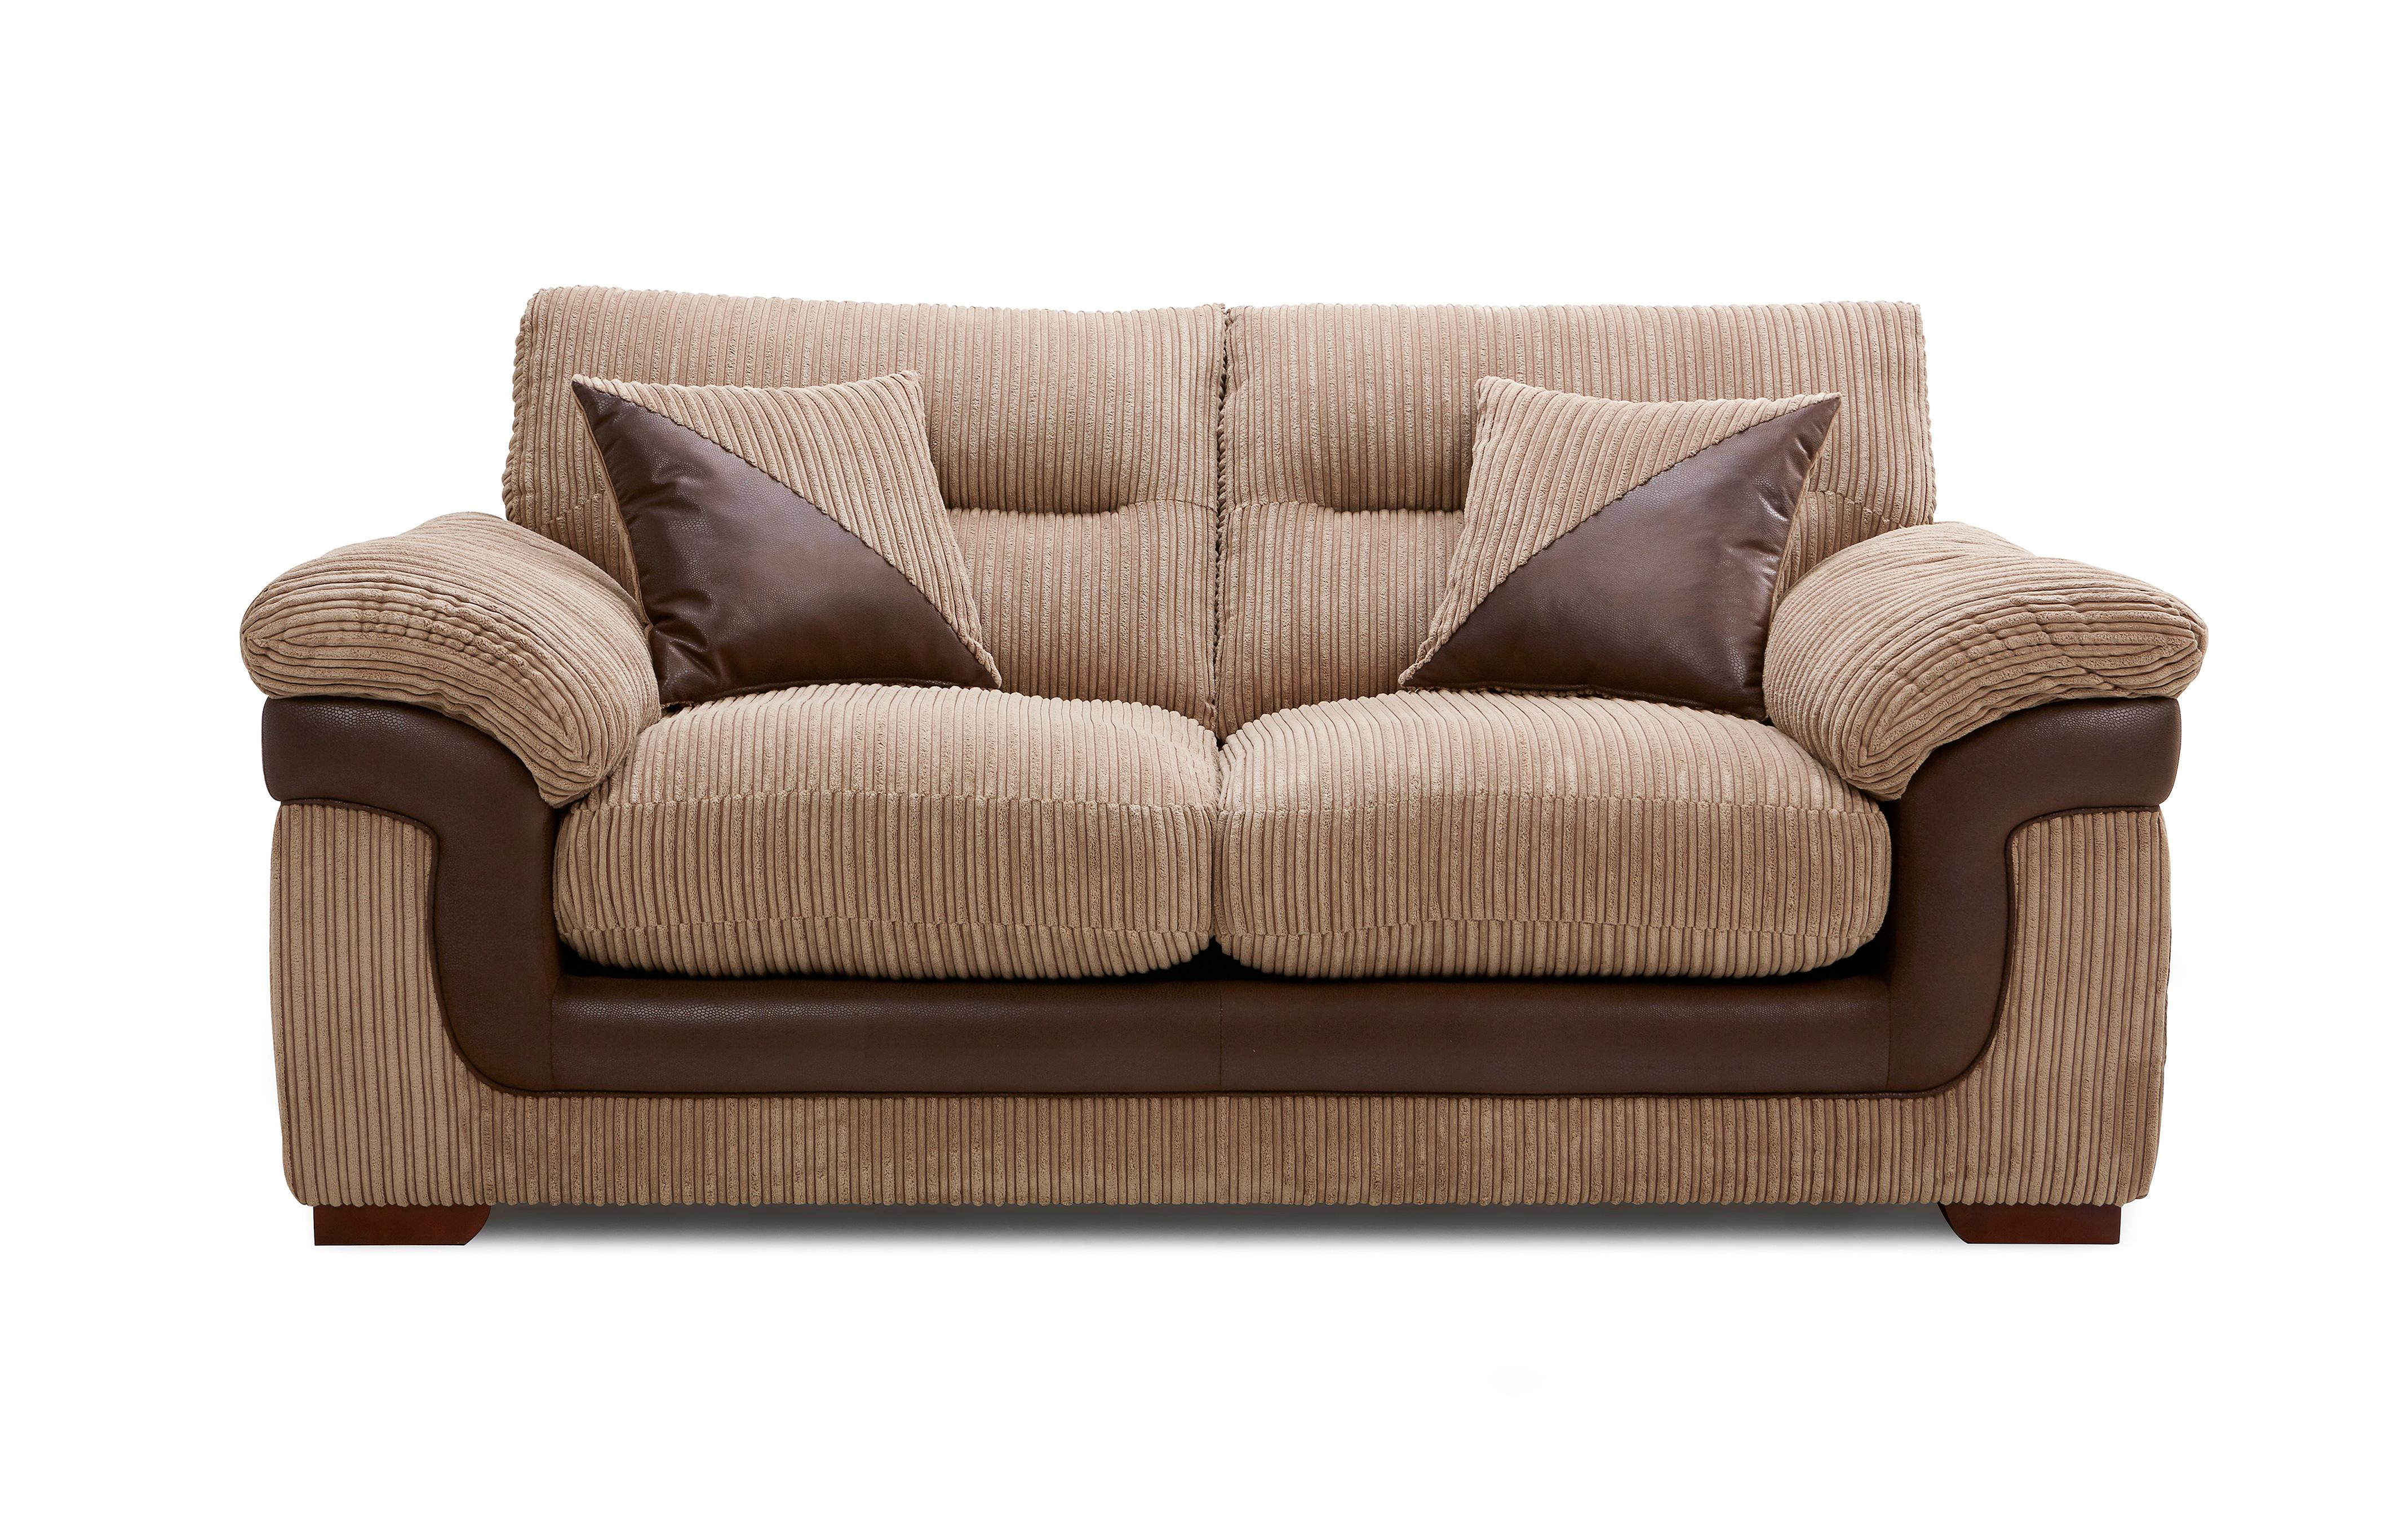 laura ashley sofa bed review italian sectional sofas leather abingdon 2 seater brokeasshome